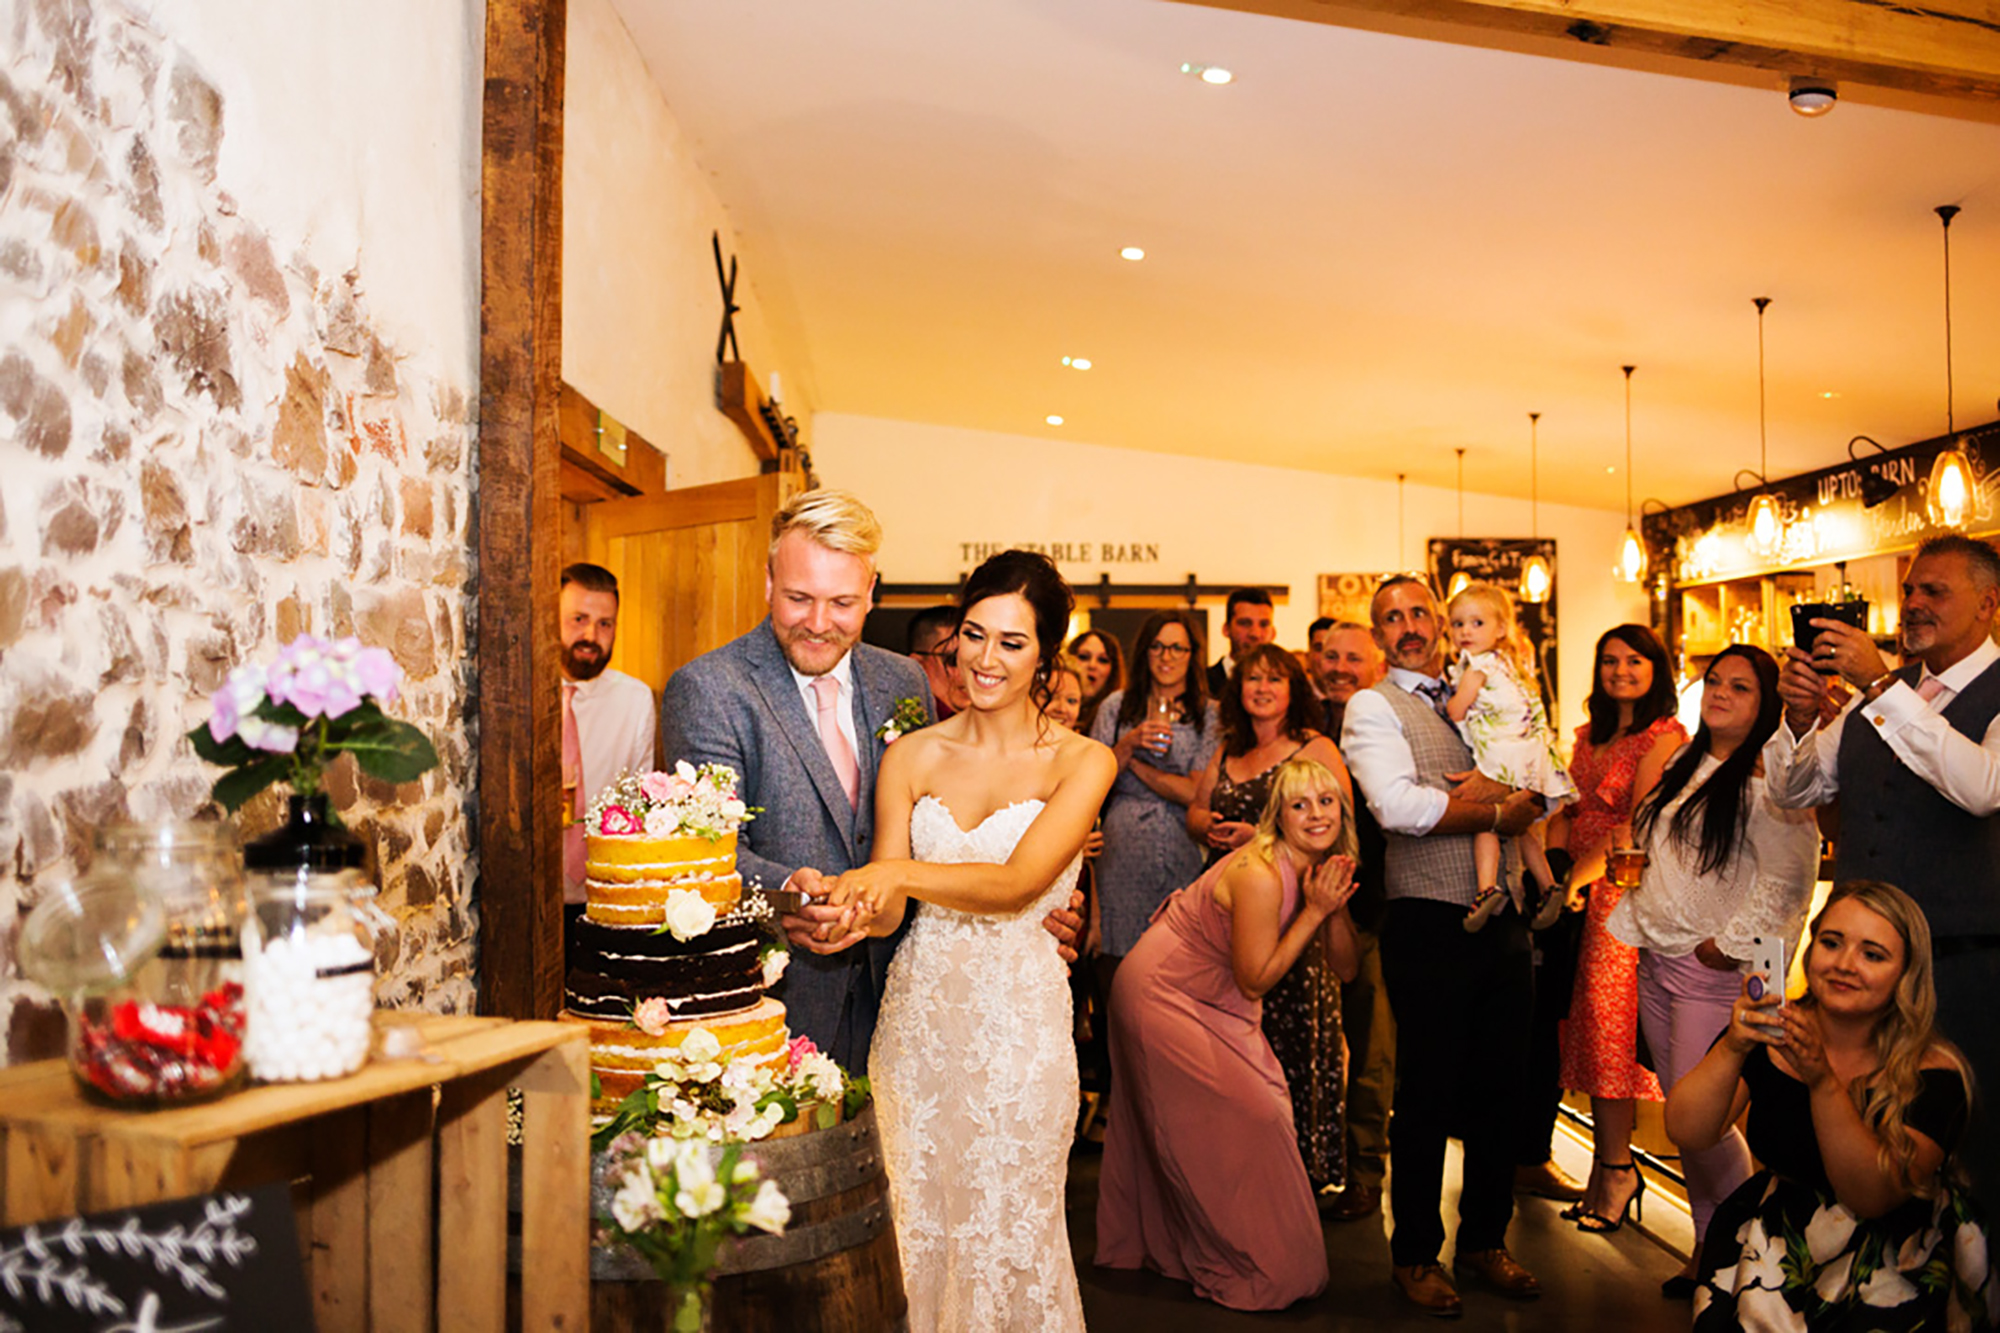 Bride and Groom cut wedding cake infront of their guests in the Press Bar